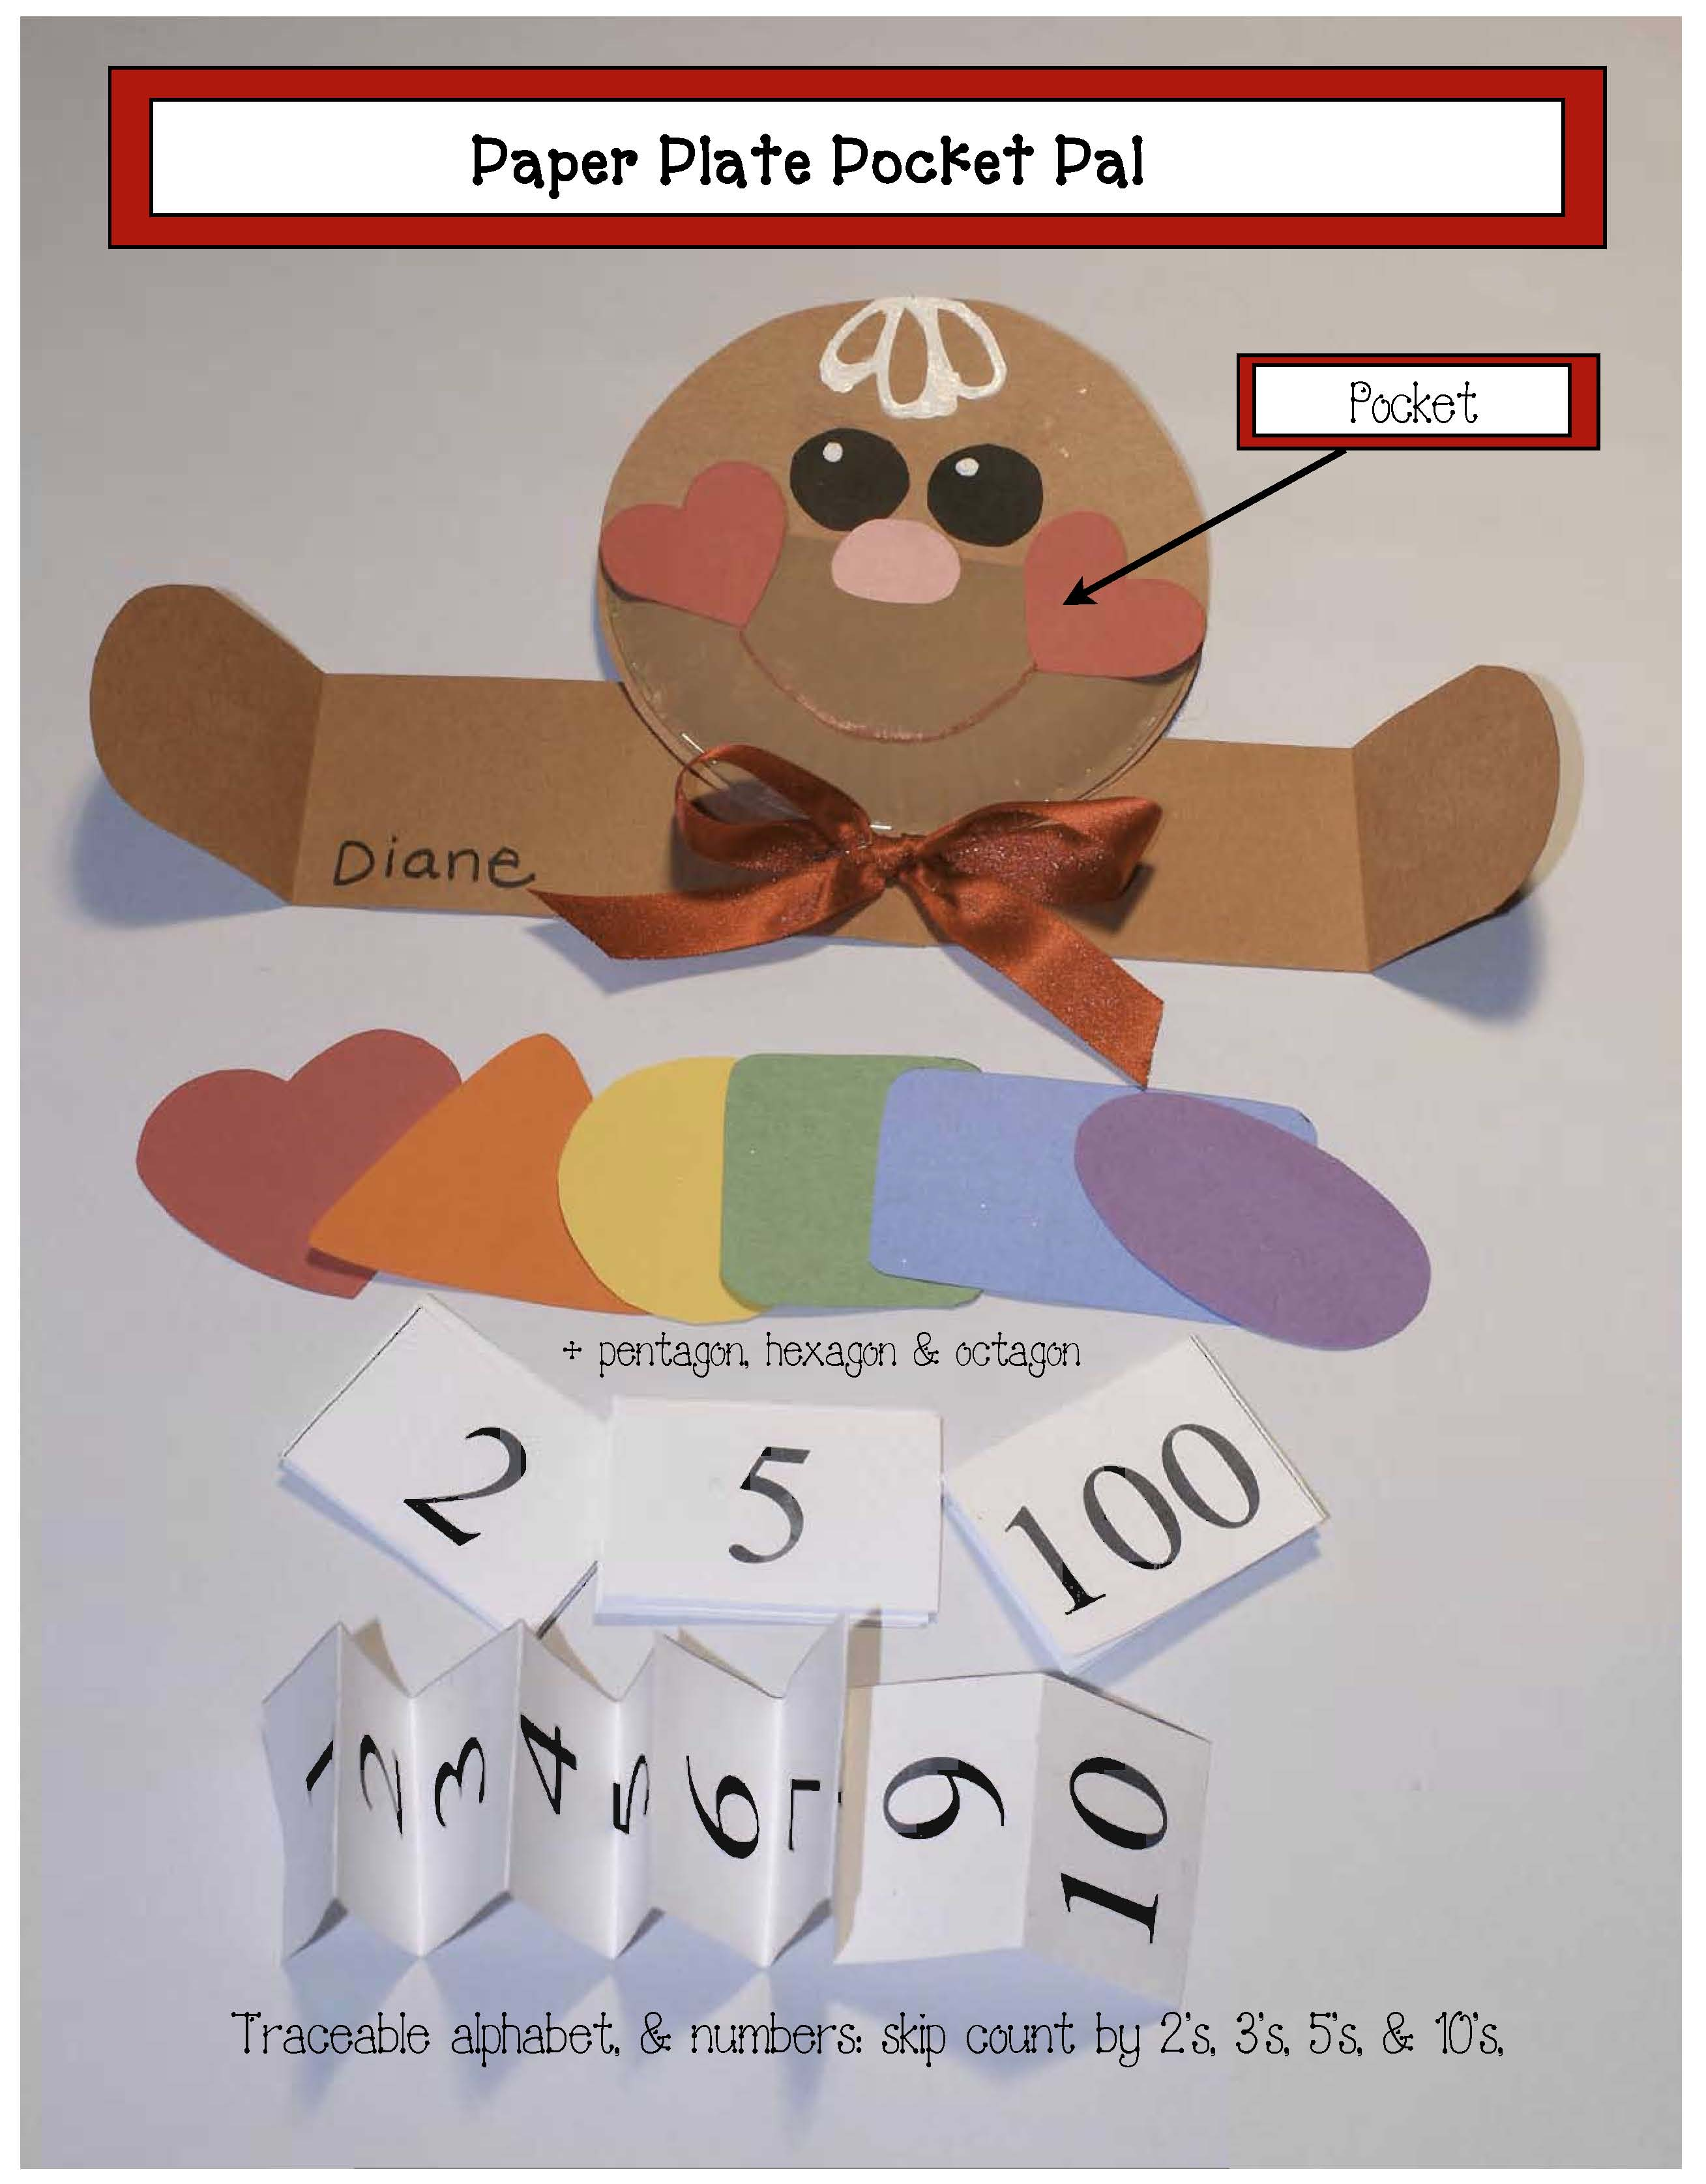 gingerbread activities, gingerbread lessons, gingerbread crafts, common core gingerbread, shape activities, alphabet activities, gingerbread arts and crafts, skip counting activities, counting backwards activities, activities for counting backwards from 10 to 0 and 20 to 0,